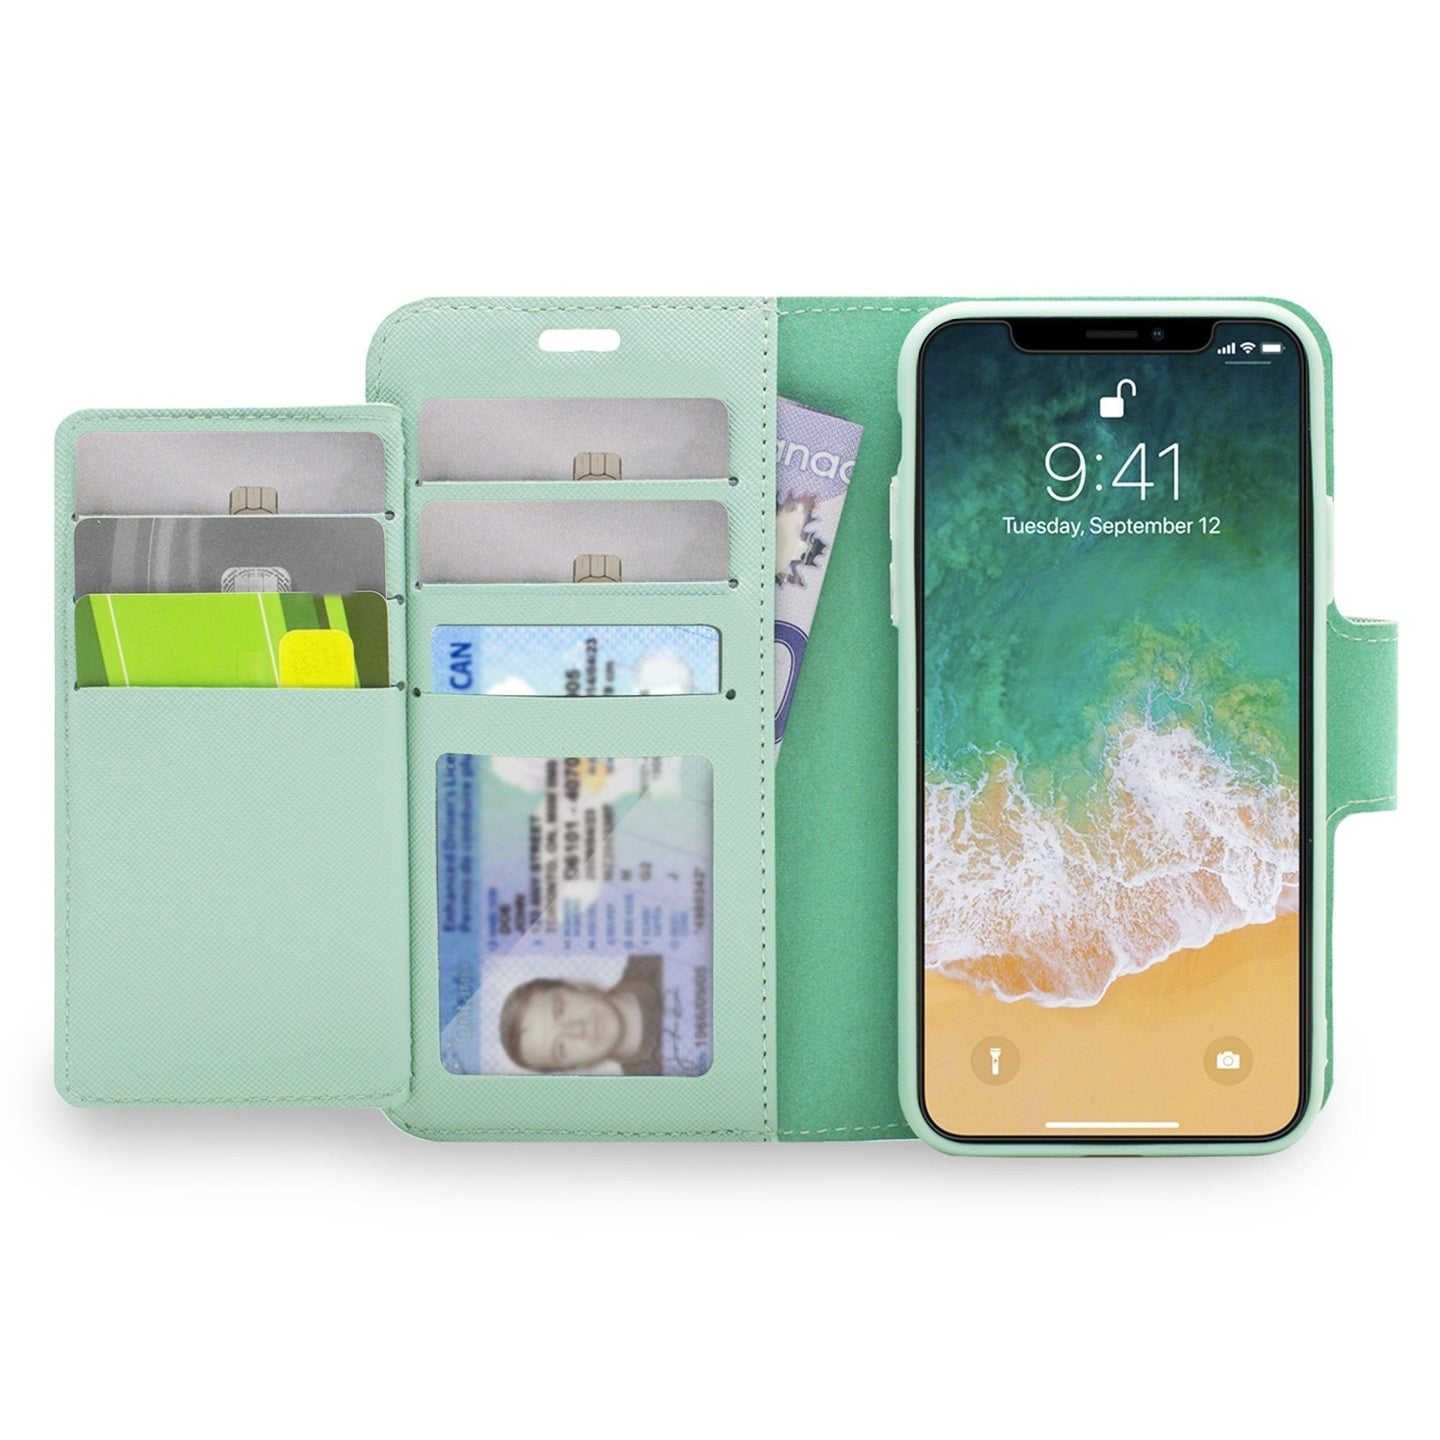 iPhone XR - Sunset Blvd Magnetic Wallet Folio Case - Turquoise